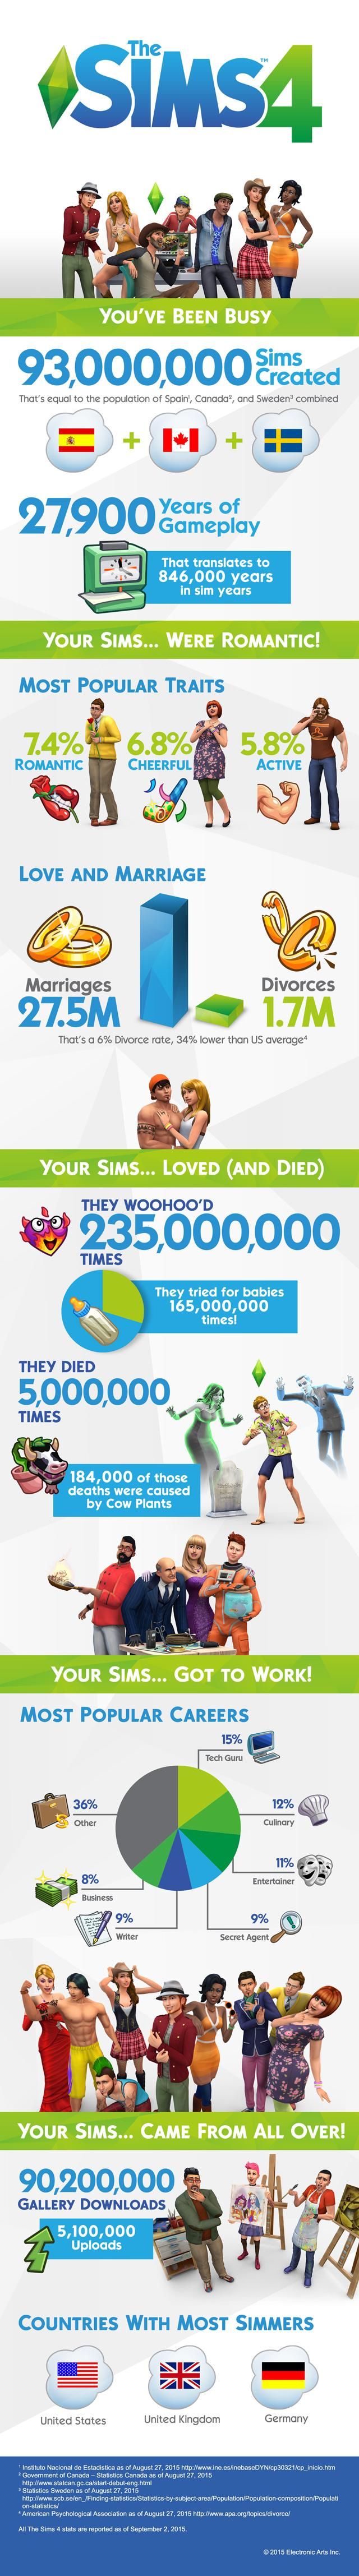 The Sims 4 Infographic